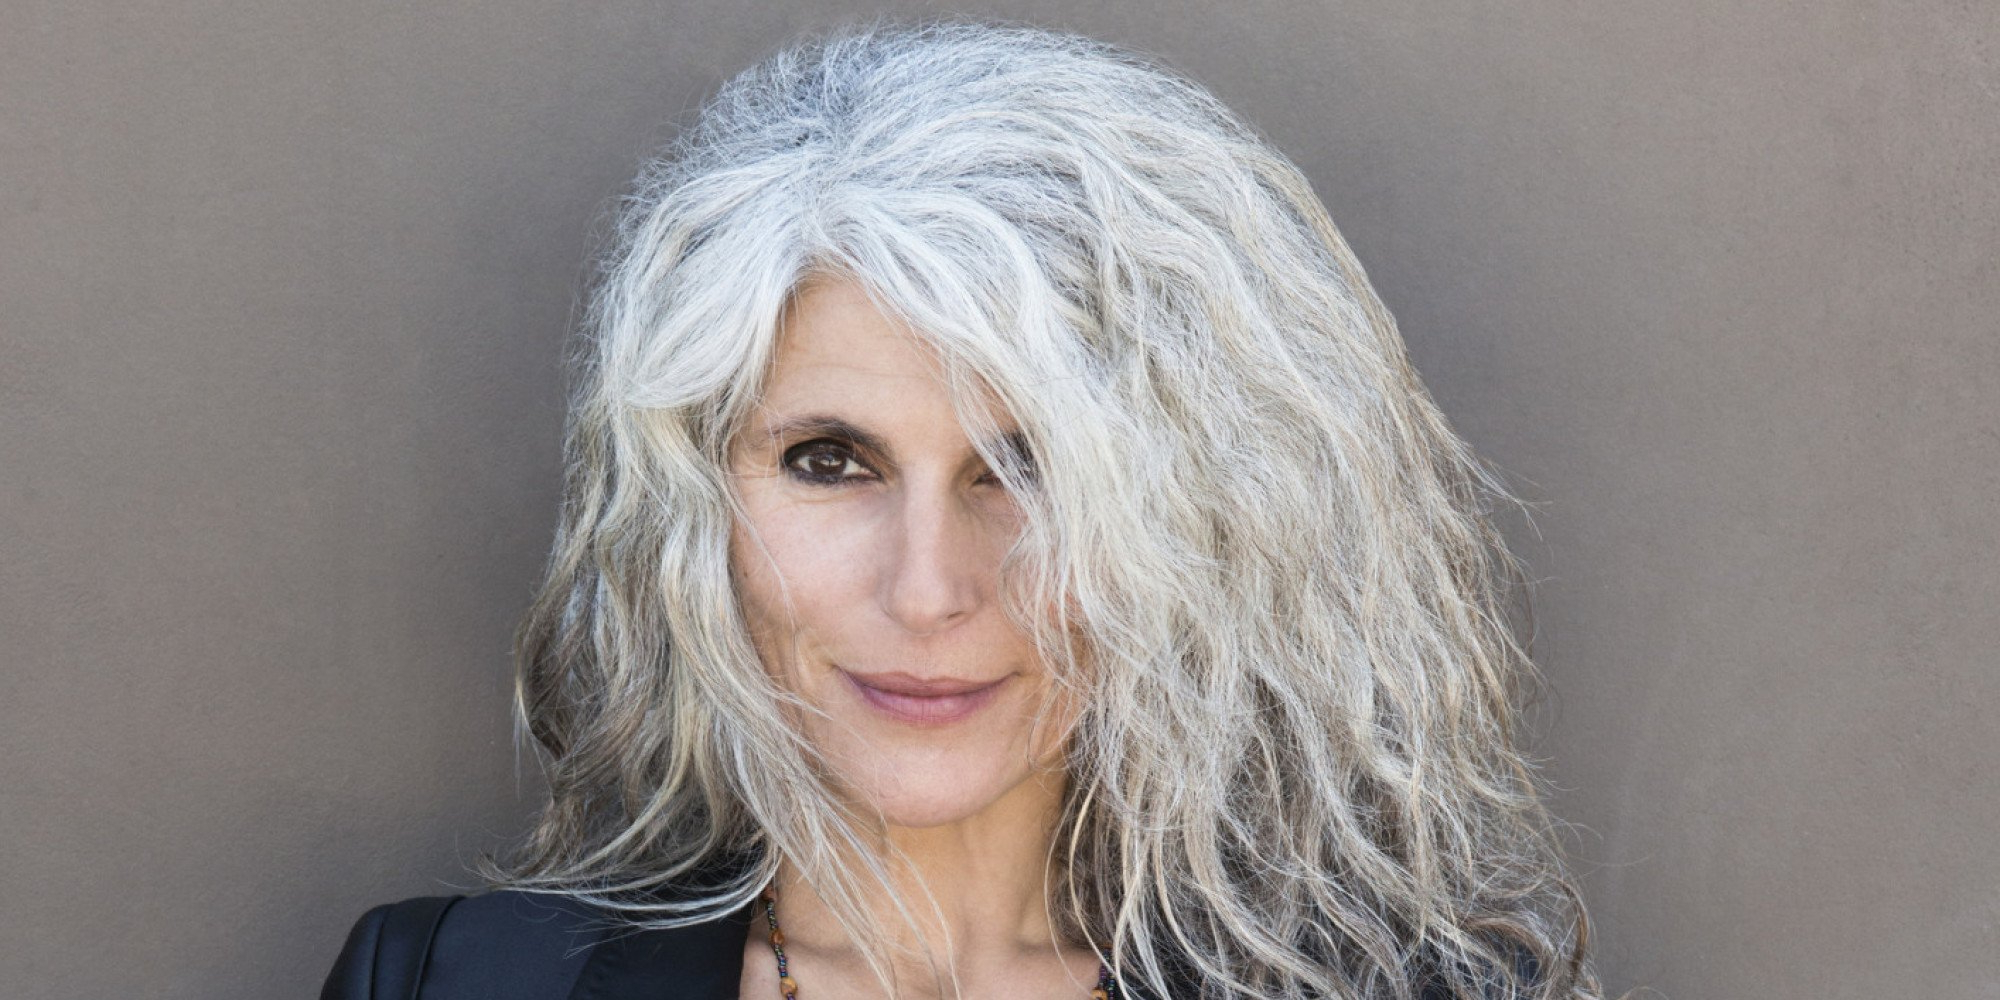 30 Stylish Gray Hair Styles For Short And Long Hair Throughout Newest Medium Hairstyles For Salt And Pepper Hair (Gallery 6 of 20)